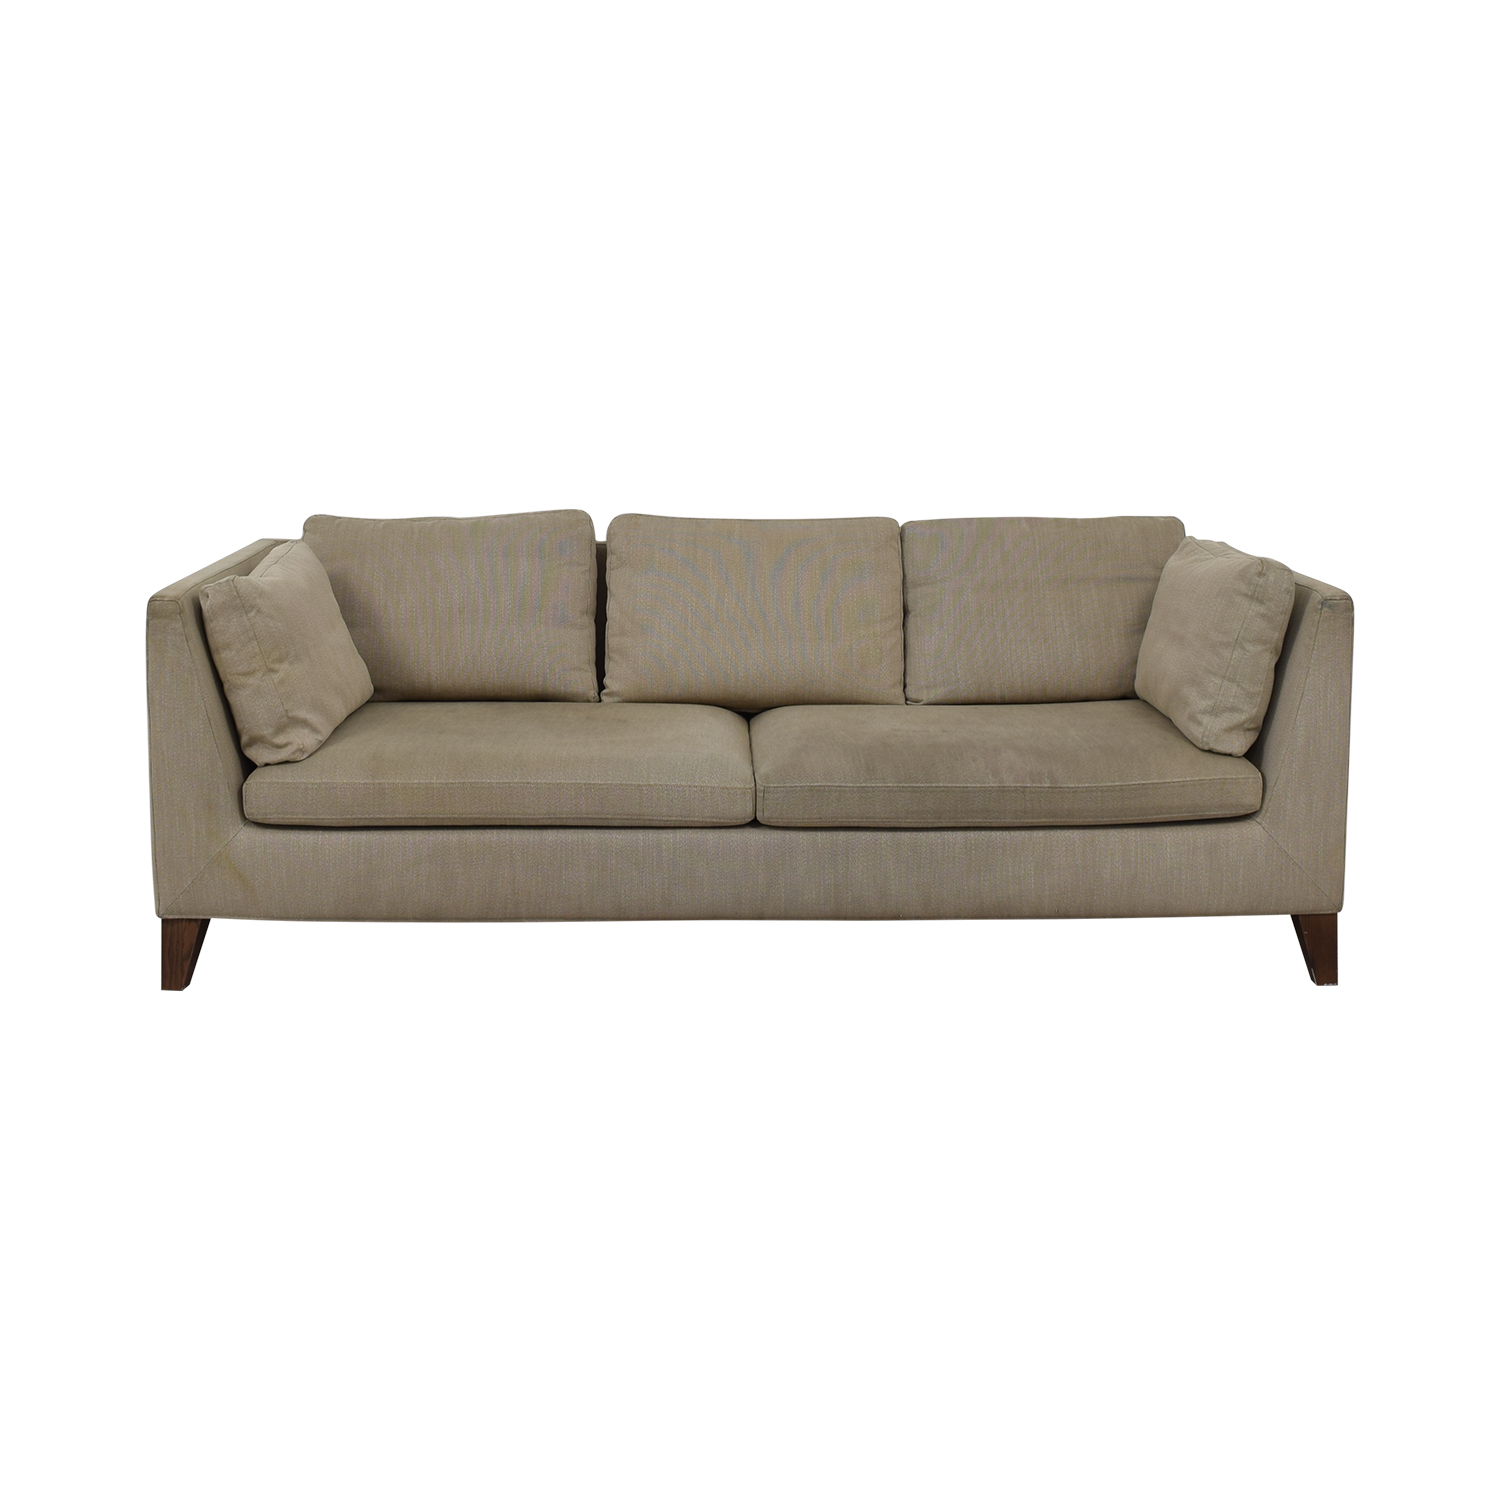 IKEA Stockholm Beige Two-Cushion Sofa / Sofas